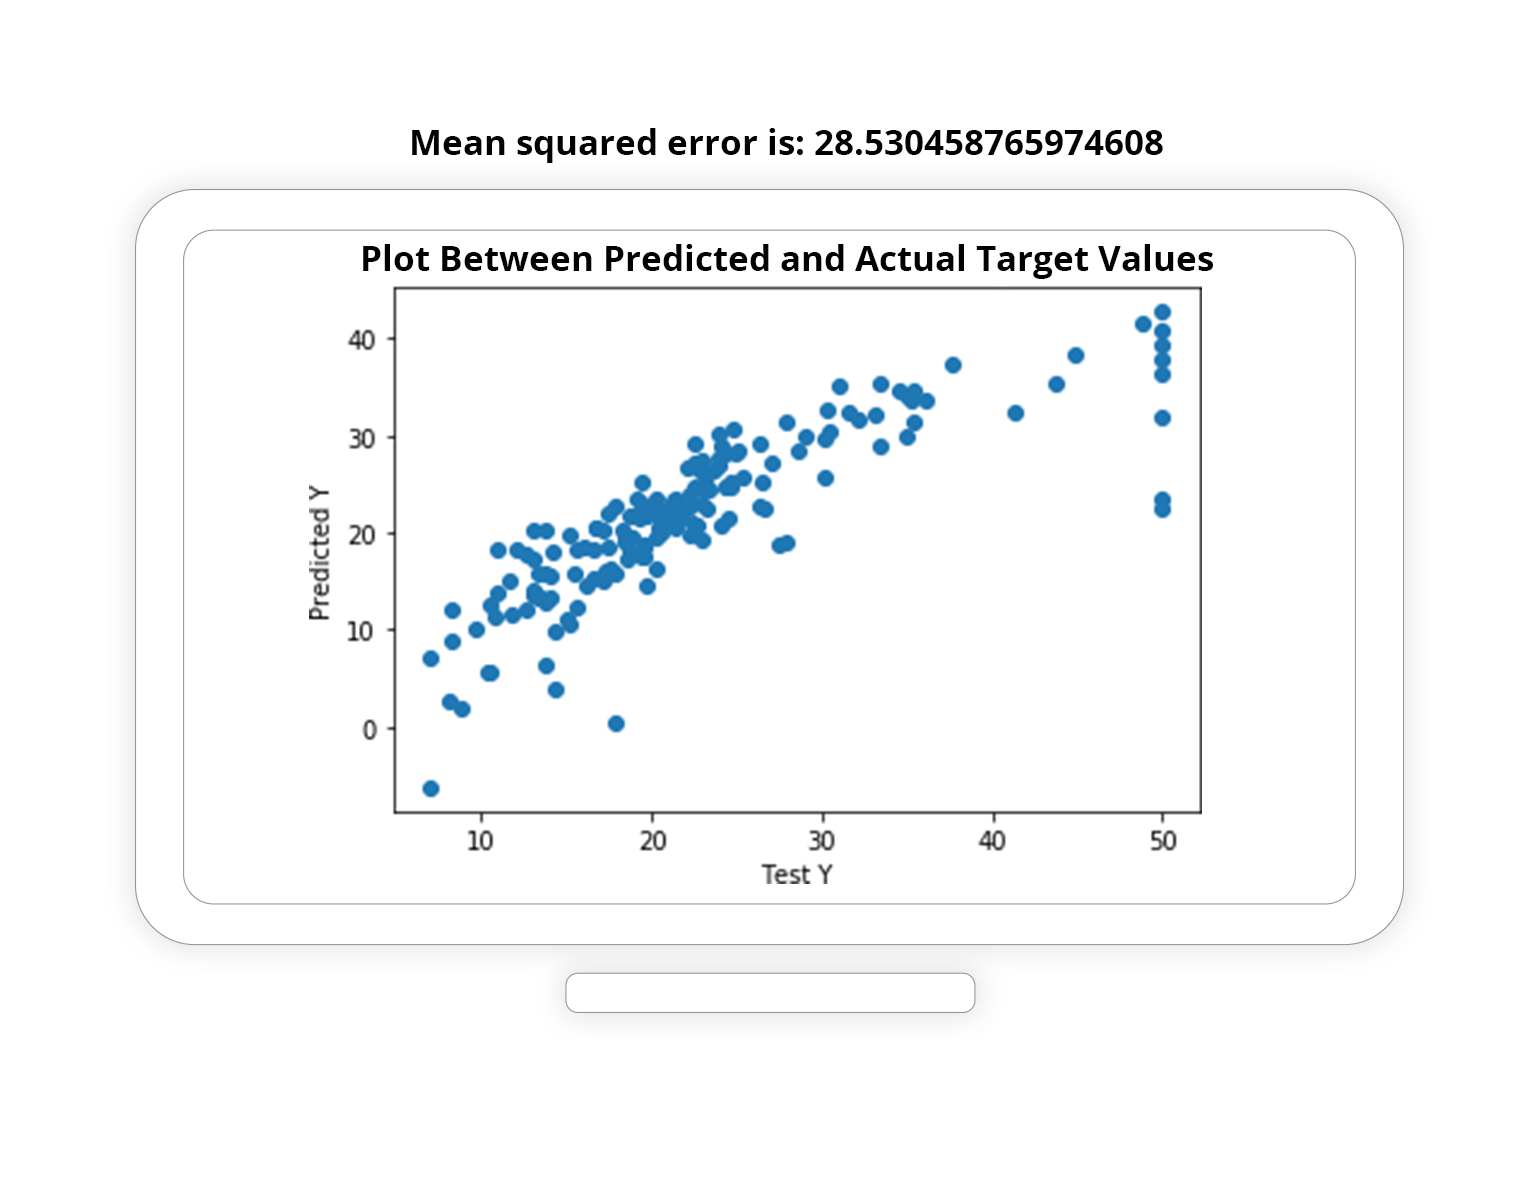 Plot Between Predicted and Actual Target Values